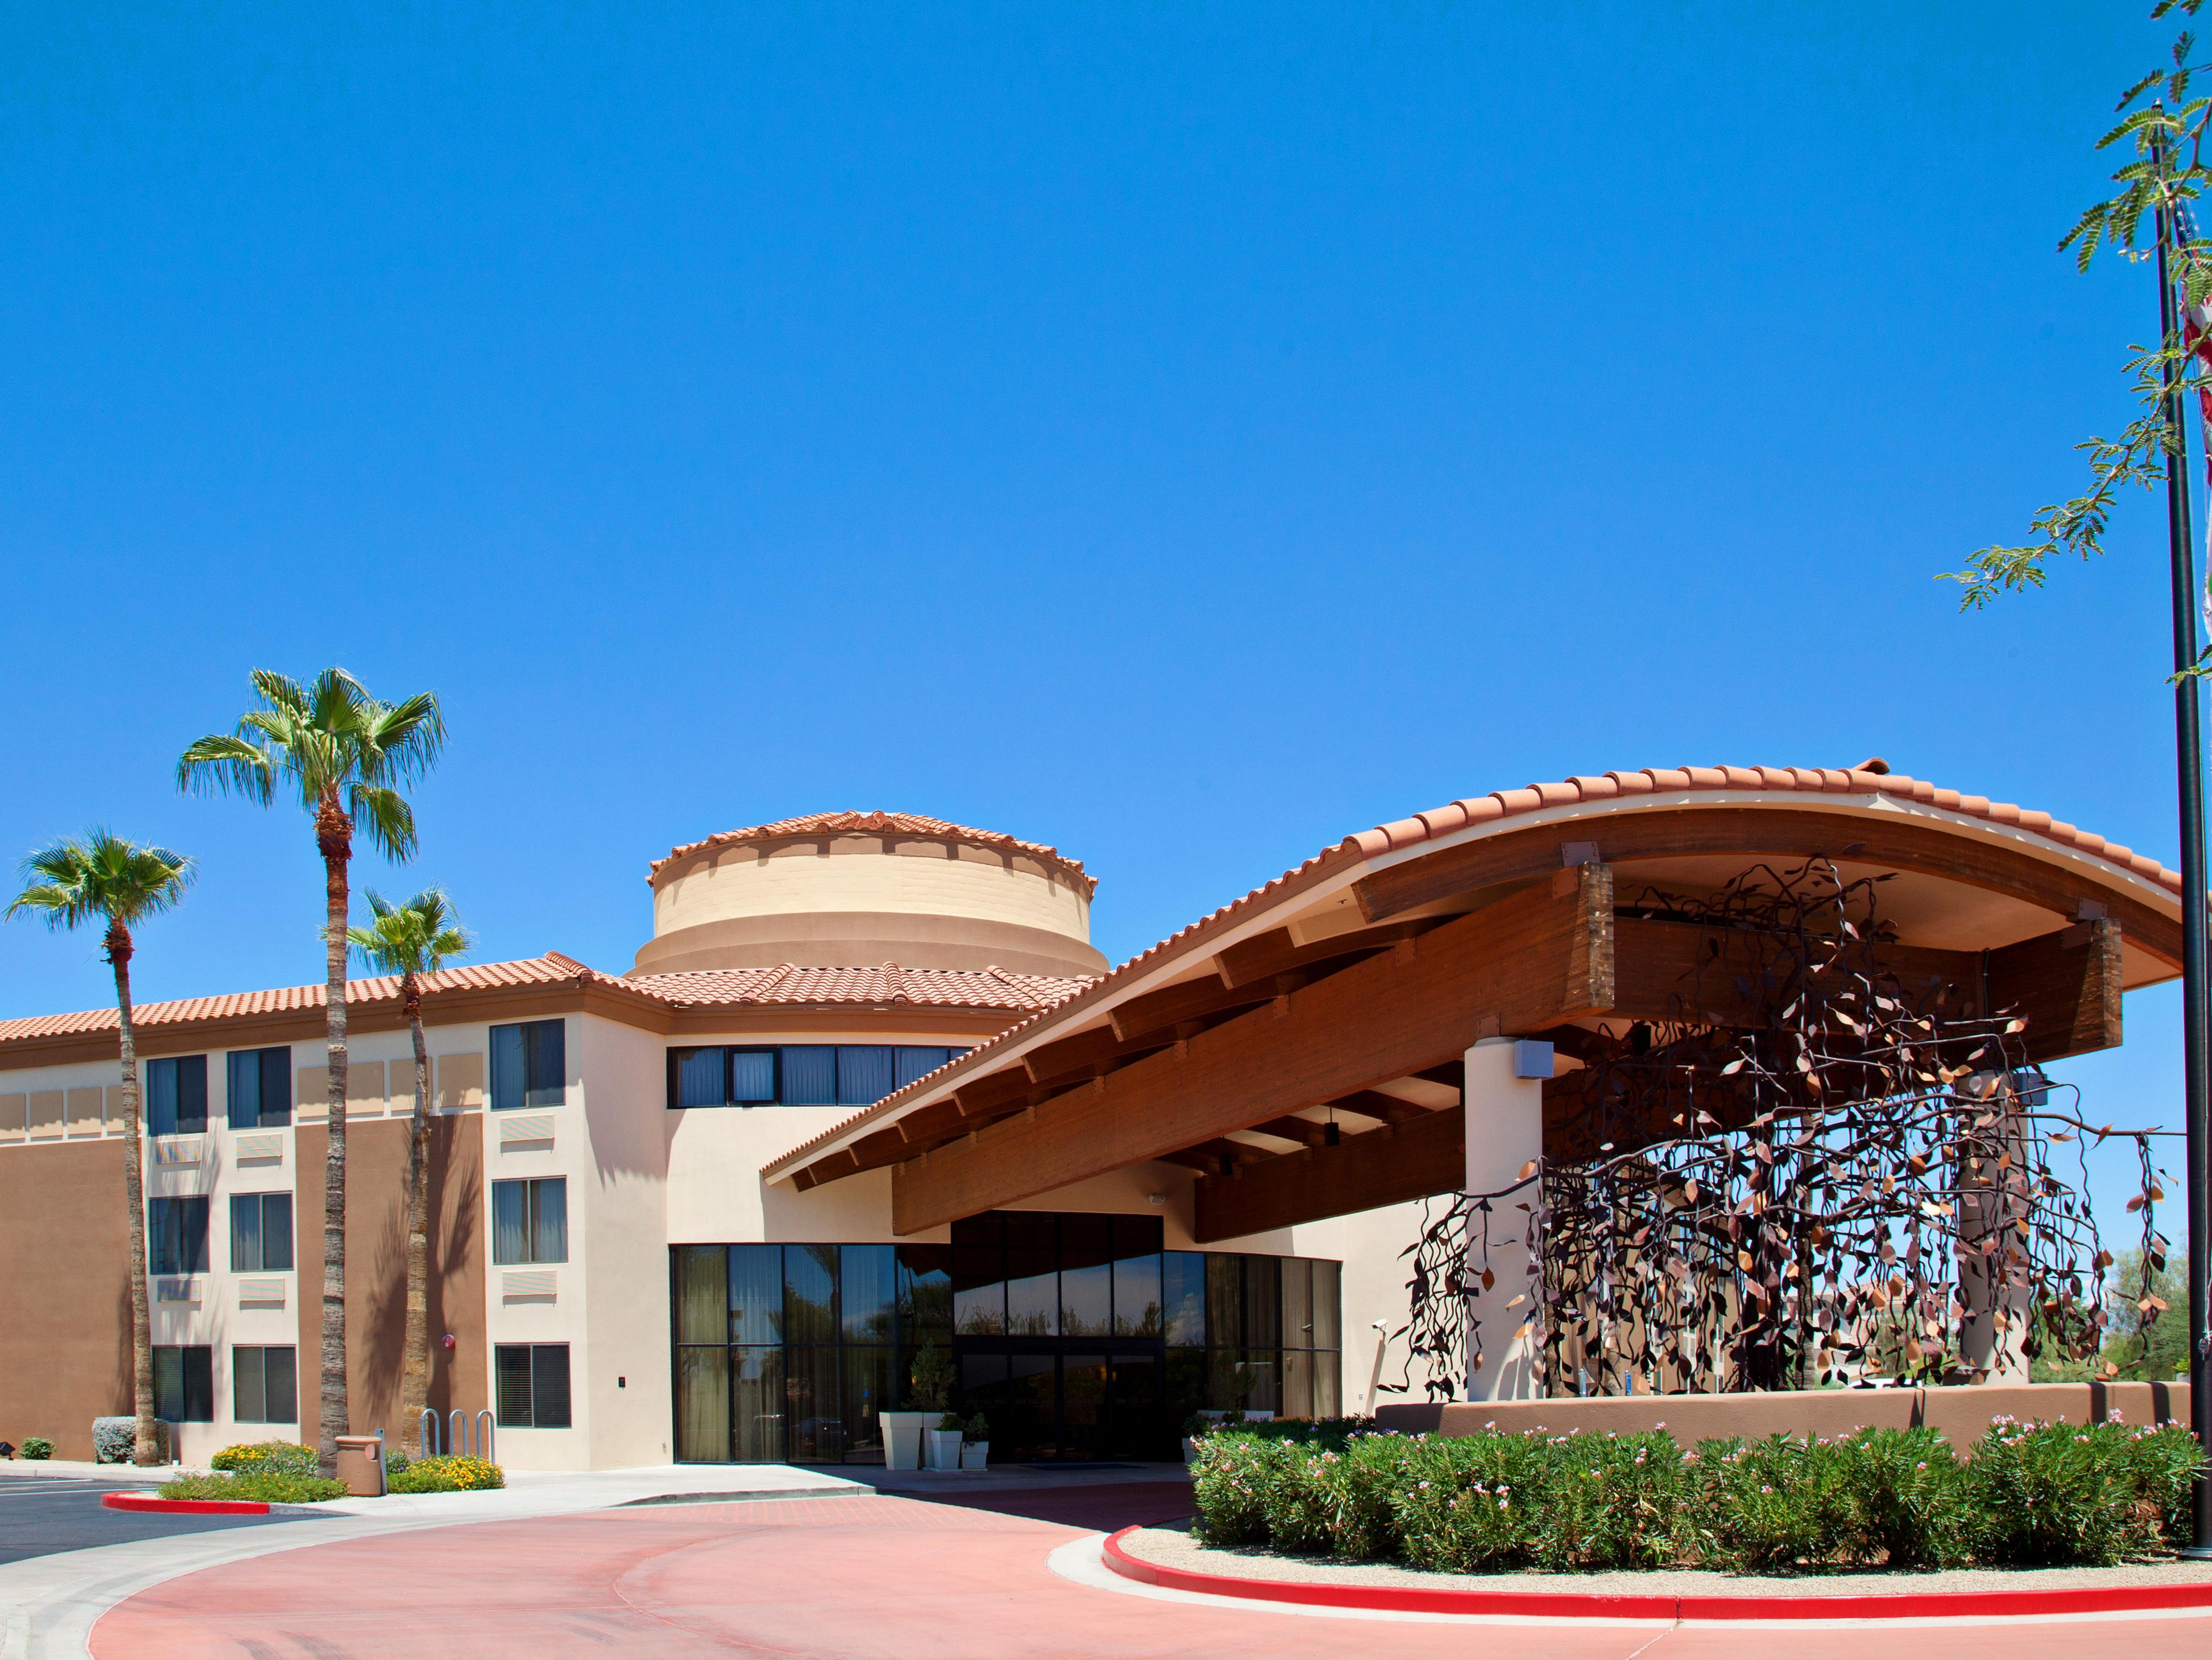 Holiday Inn Express Scottsdale North Entrance